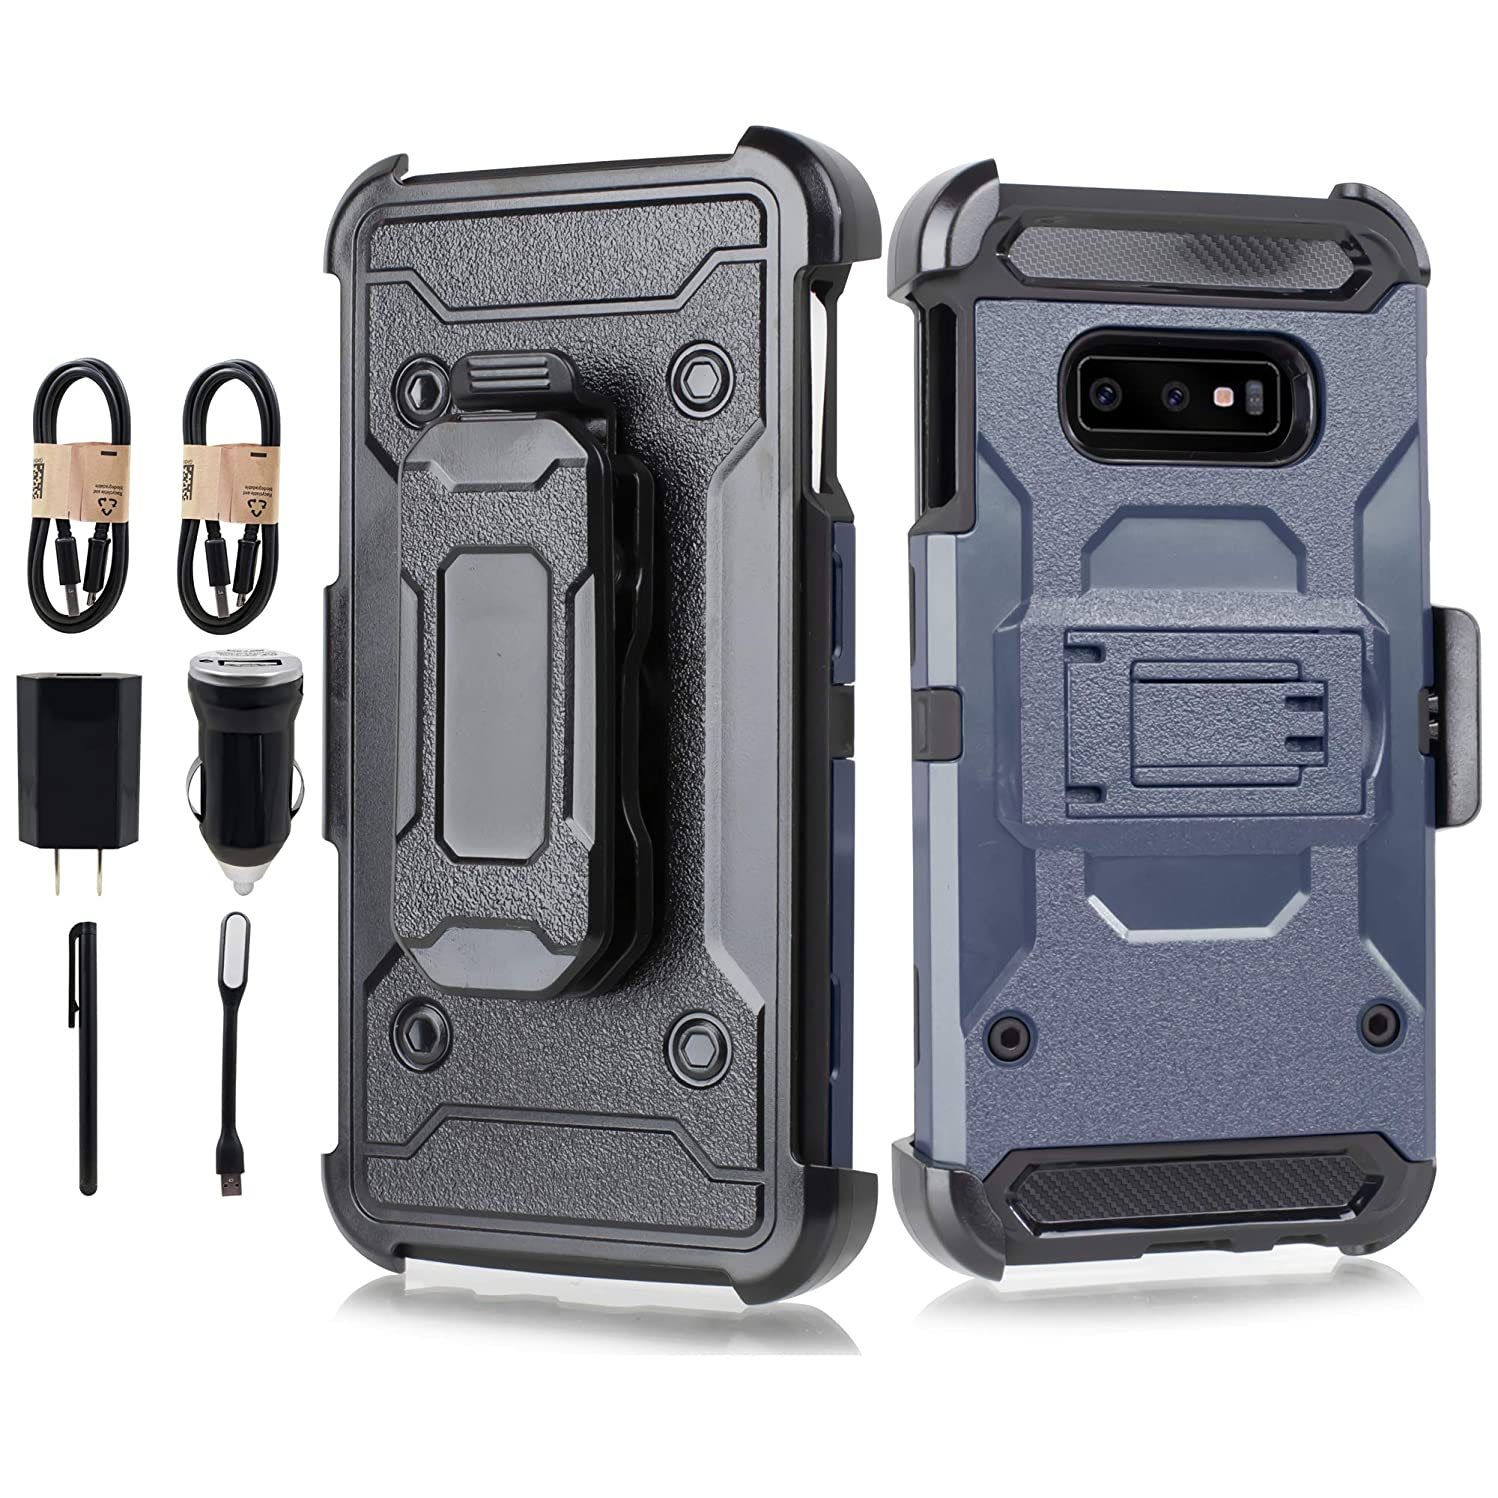 Galaxy S10e Case S10 Lite Case, Hybrid Shockproof Heavy Duty Rugged Protective Cover with Kickstand and Belt Clip Holster for Samsung Galaxy S10e / S10 Lite 5.8 inch [Accessory Bundle] (Navy)